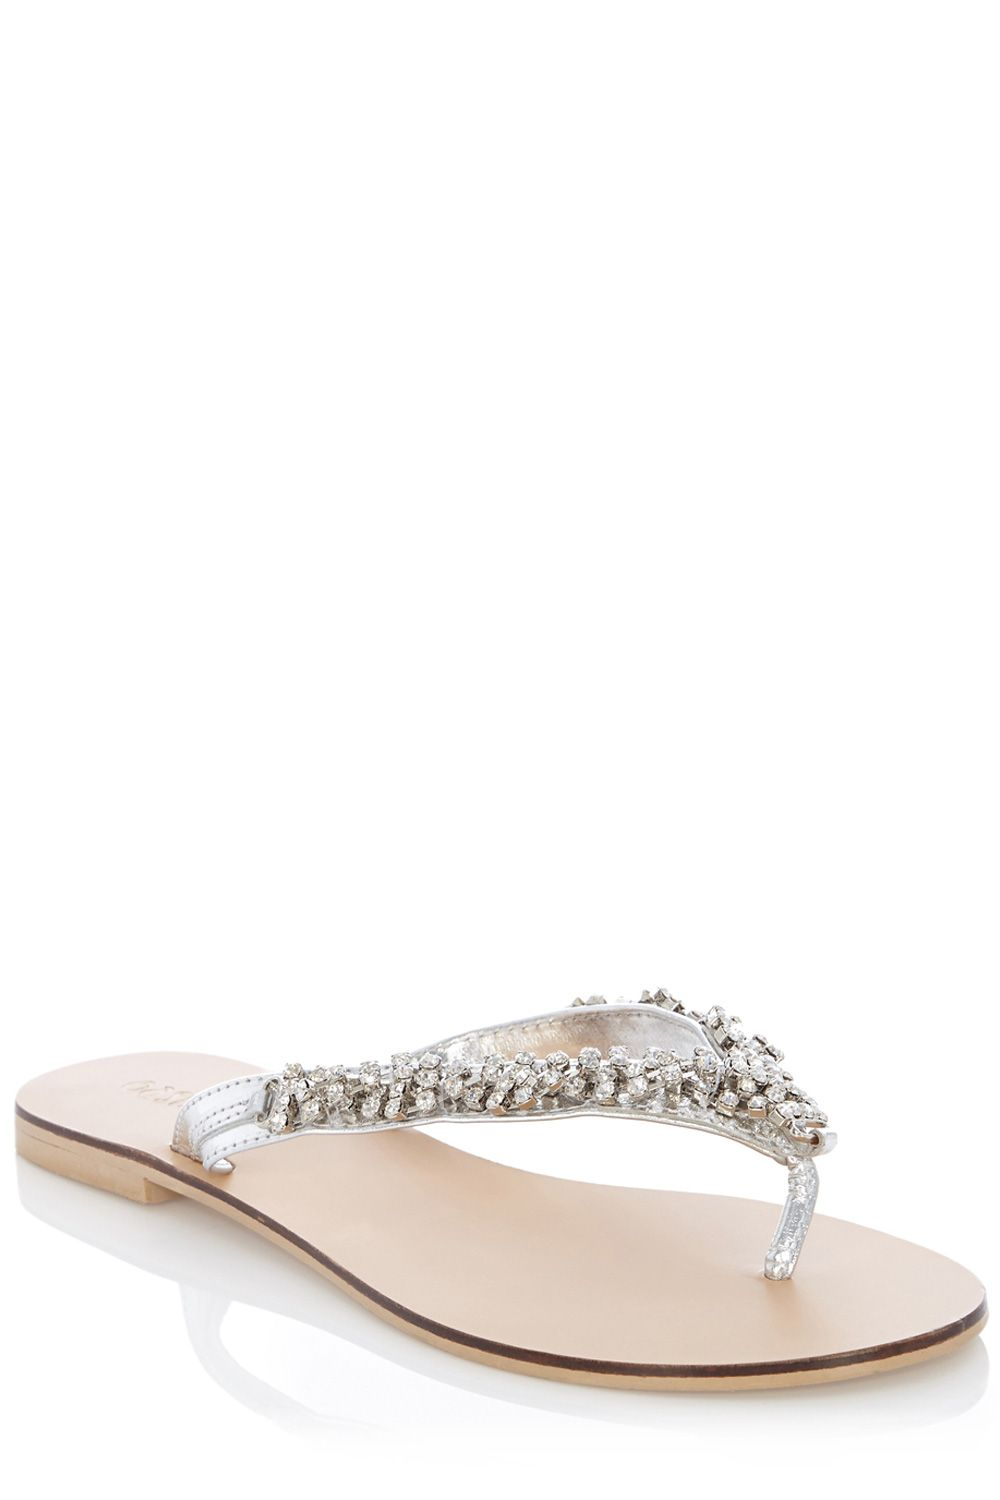 Crystal sparkle toe post sandals